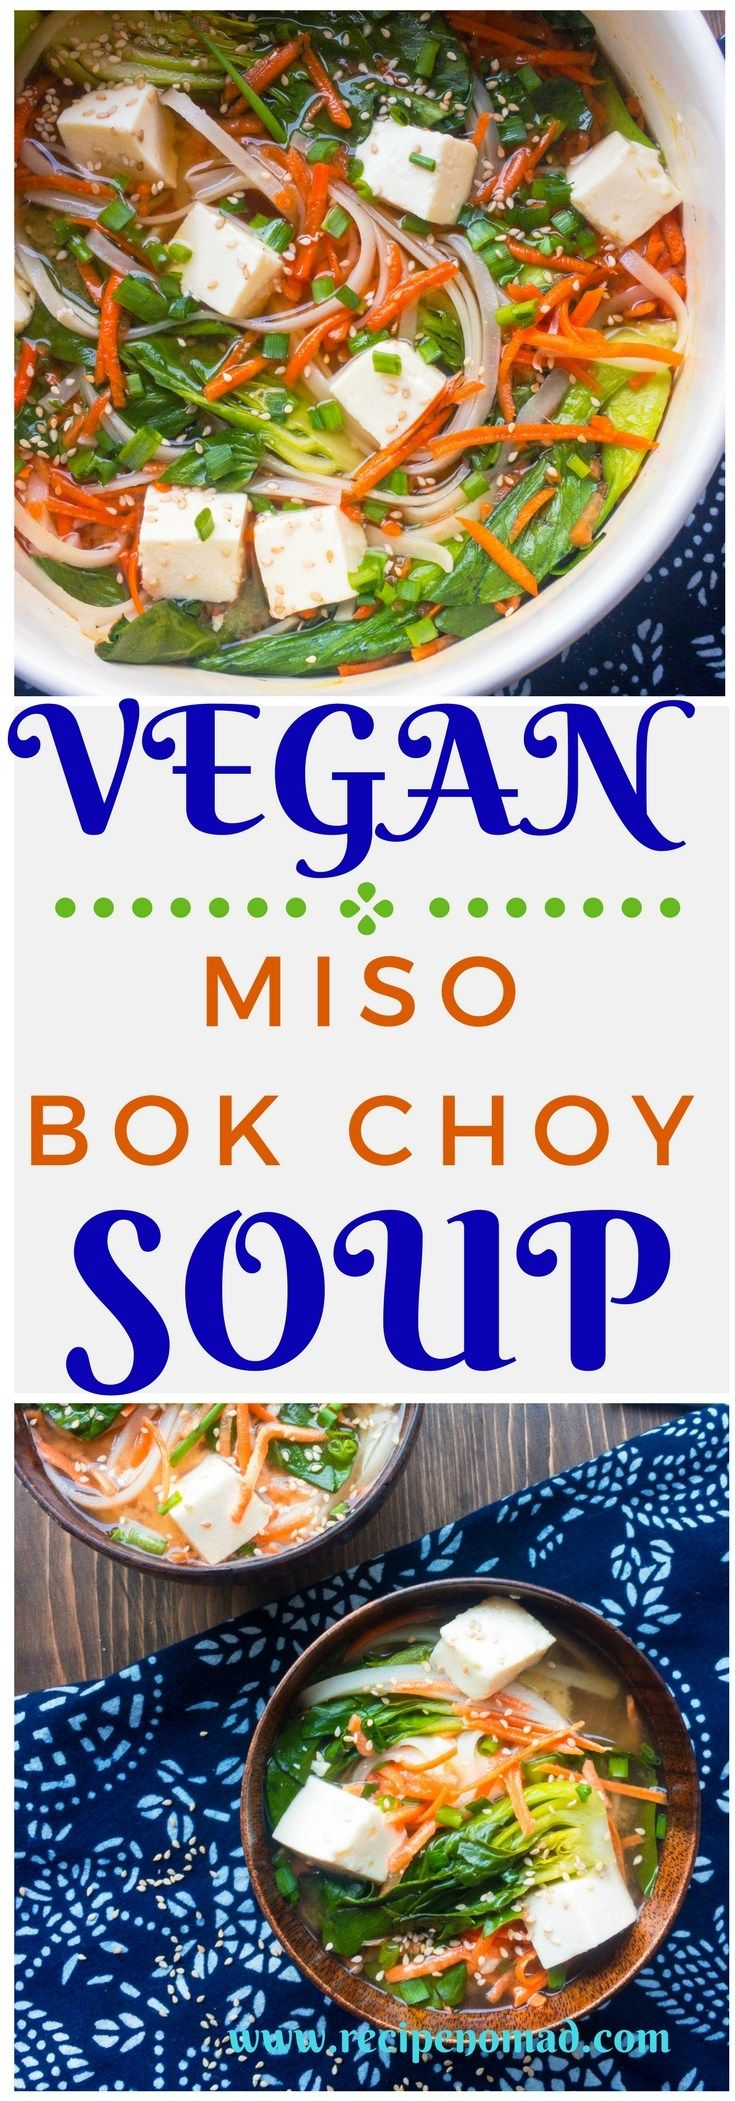 Vegan Miso Bok Choy Soup | Recipe Nomad   With just a few Asian ingredients like miso, bok choy and tofu this recipe for Vegan Miso Bok Choy Soup is the perfect healthy soup that your whole family will love!